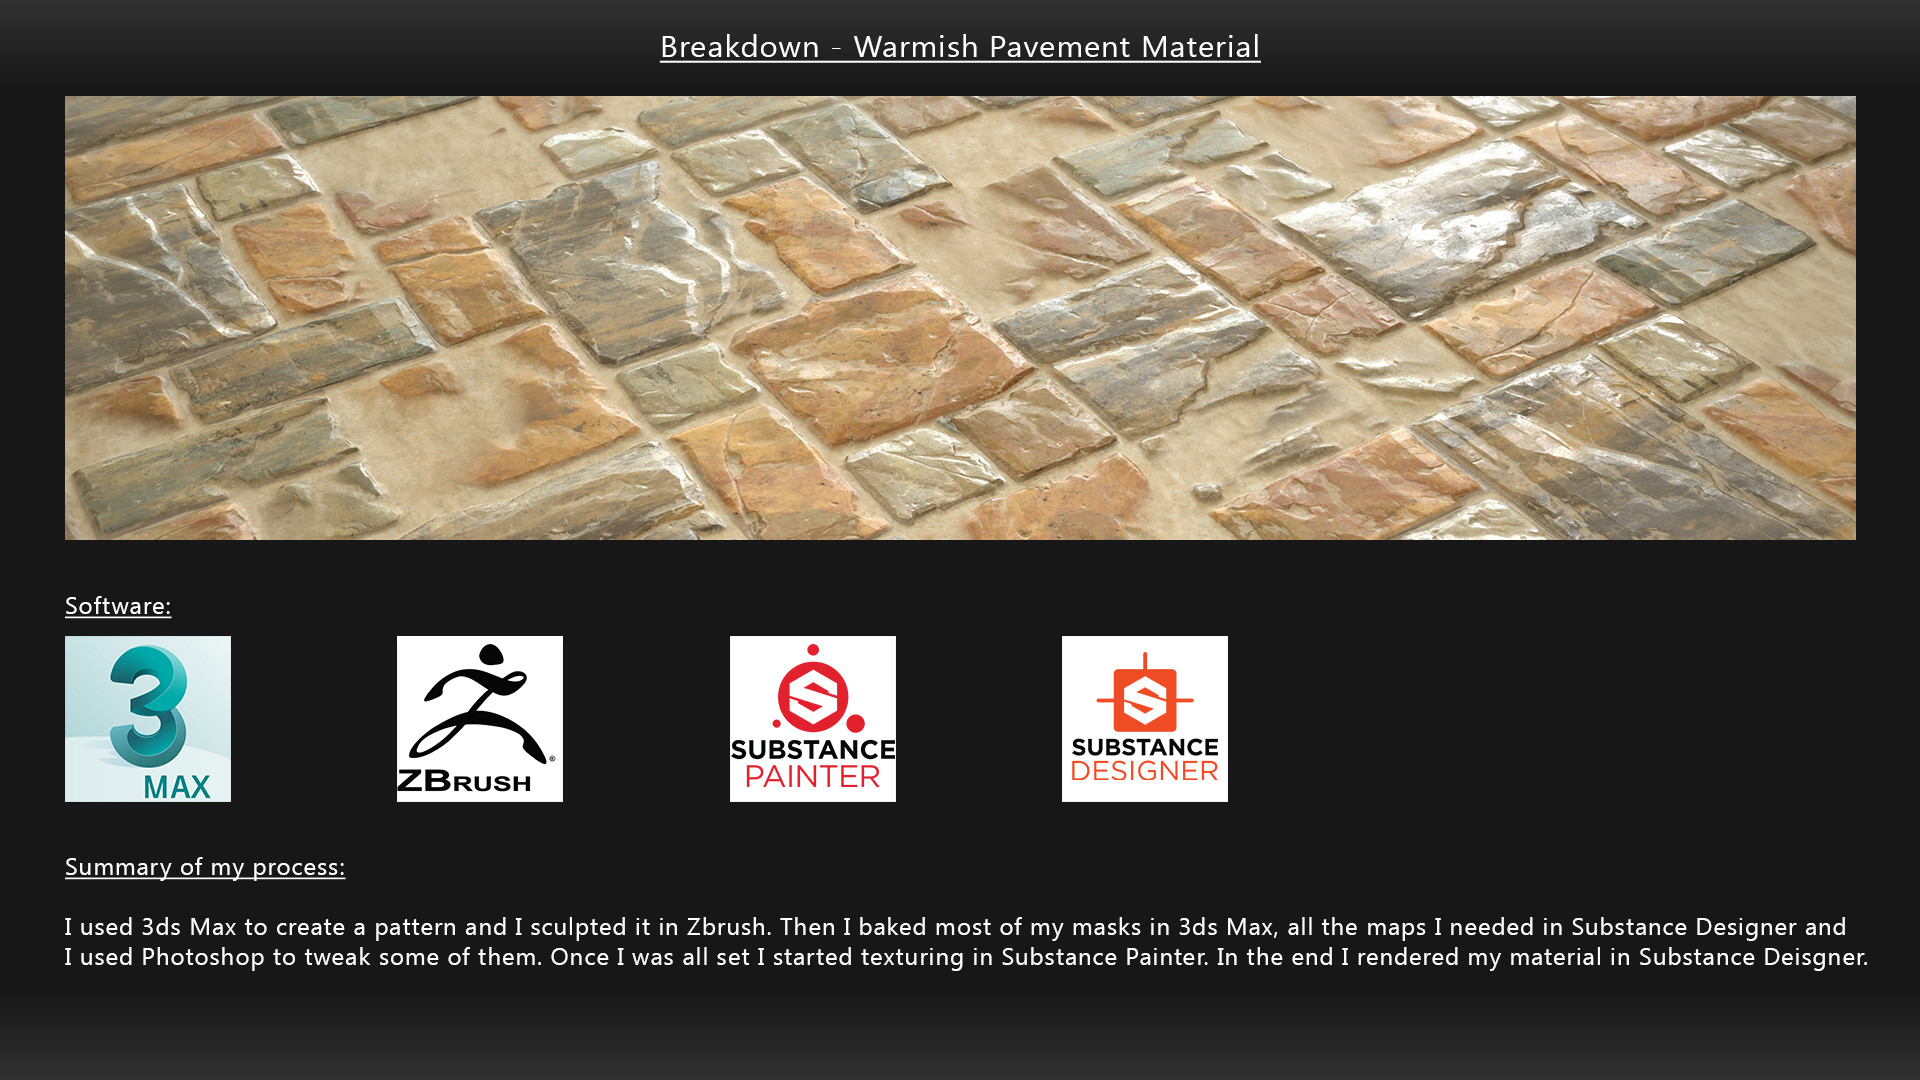 ArtStation - Tutorial Material Creation - Warmish Pavement